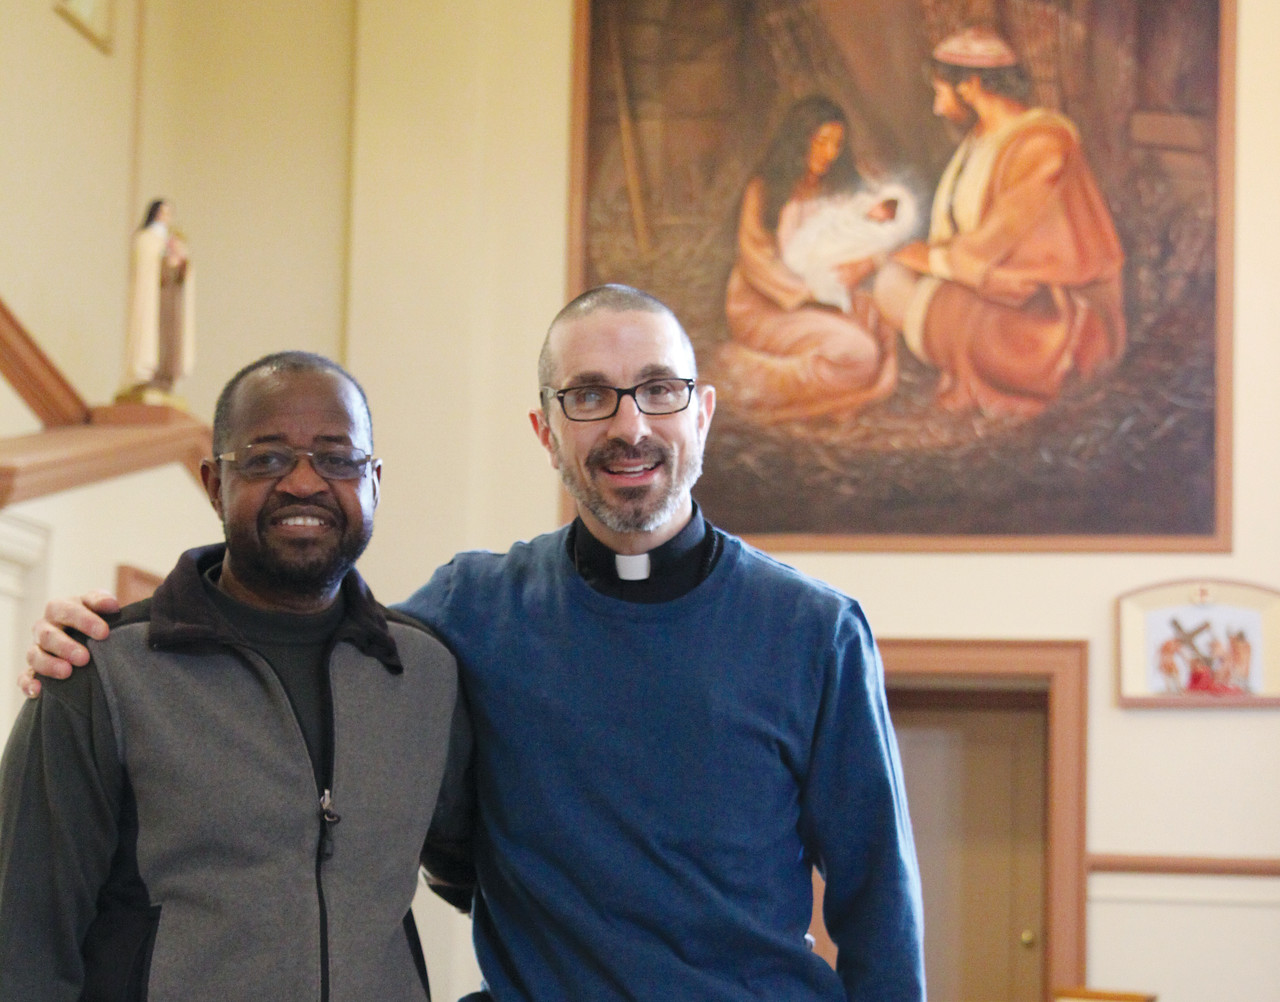 SOLIDARITY: From left to right, artist Munir Deishinni Mohammed and Father James Ruggieri hope their collaboration on the St. Patrick renovations will encourage other interfaith projects in the community. Both men named the nativity scene, pictured behind them, as their favorite painting in the collection.